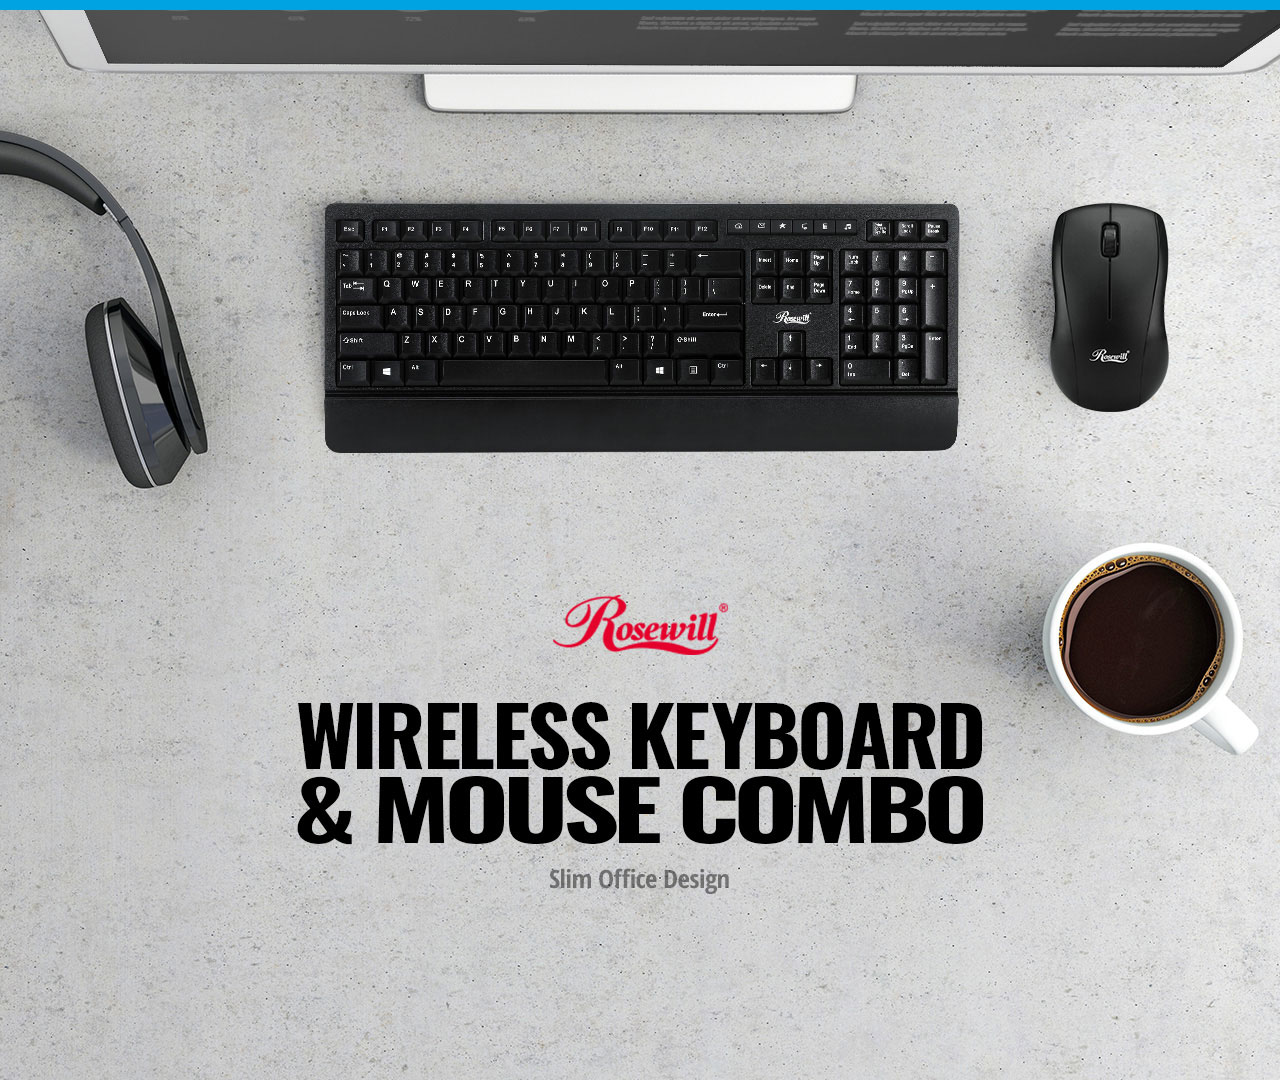 Overhead view of the Rosewill RKM-1000 keyboard and mouse on a granite desktop next to a cup of coffee, wireless headphones and a computer monitor. There is text that reads: WIRELESS KEYBOARD & MOUSE COMBO - Slim Office Design